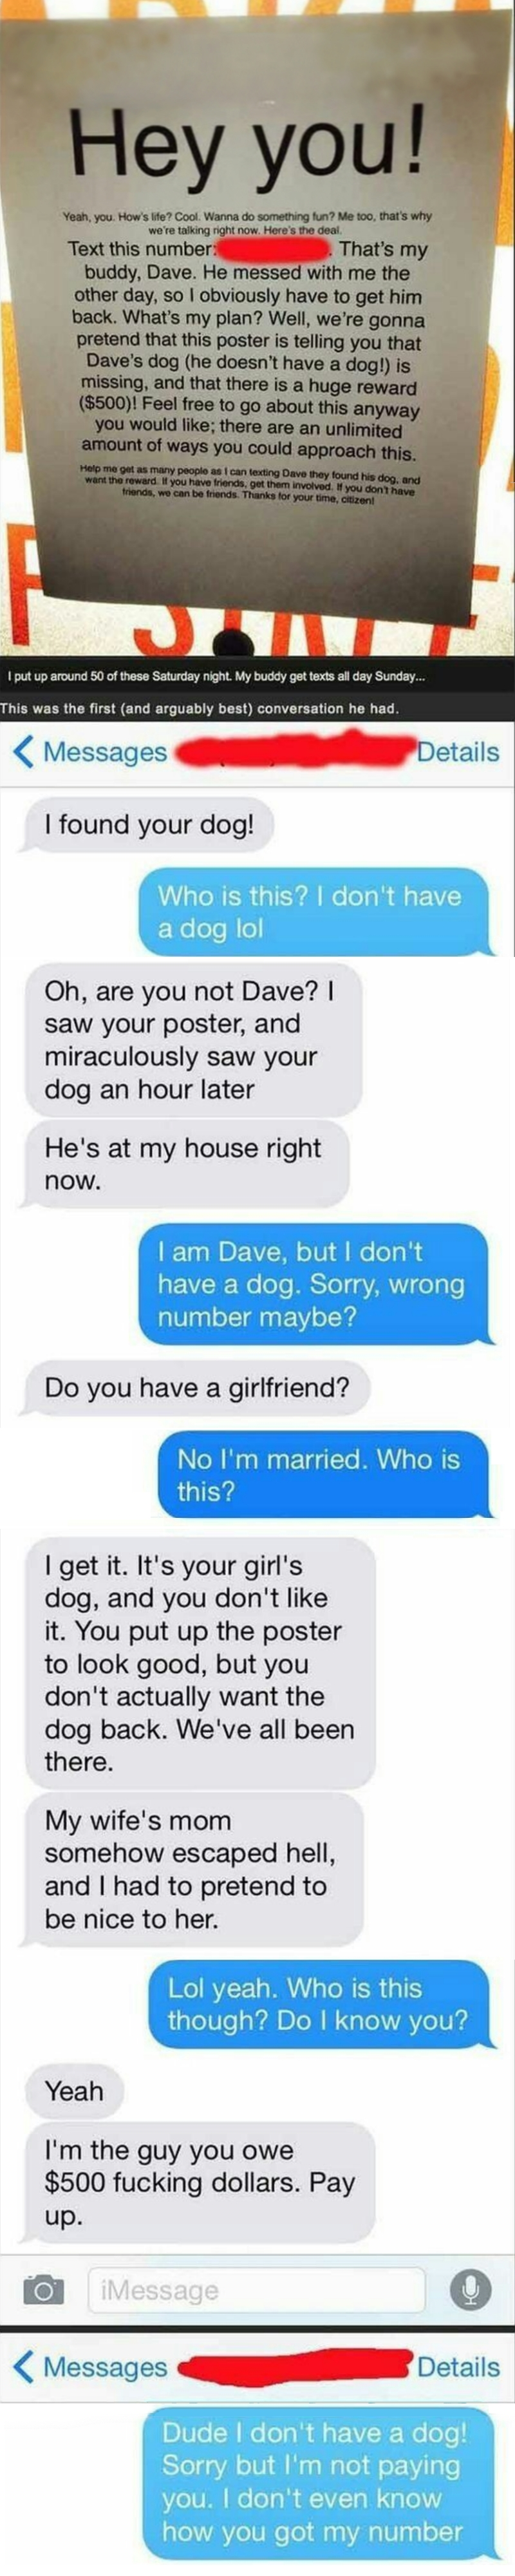 next time you need a good revenge prank idea, try this 'lost dog